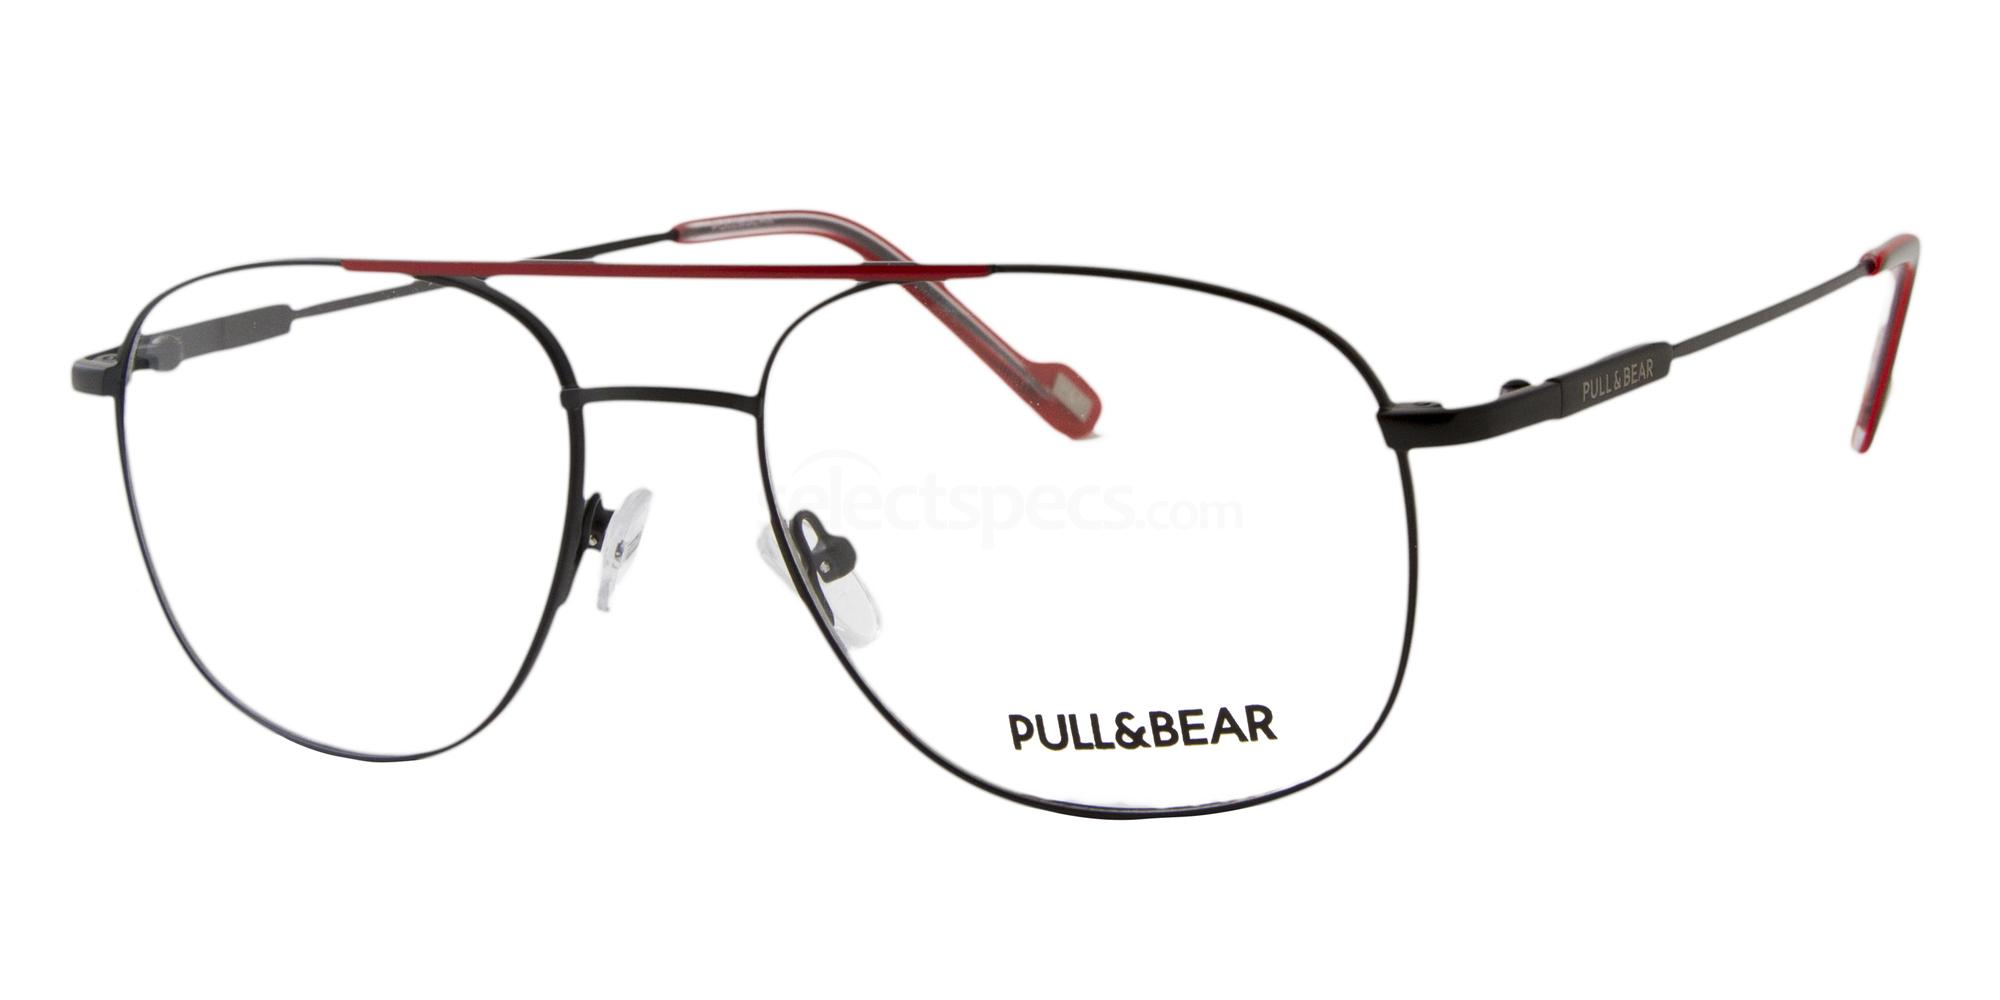 C1 PBG1865 Glasses, PULL&BEAR